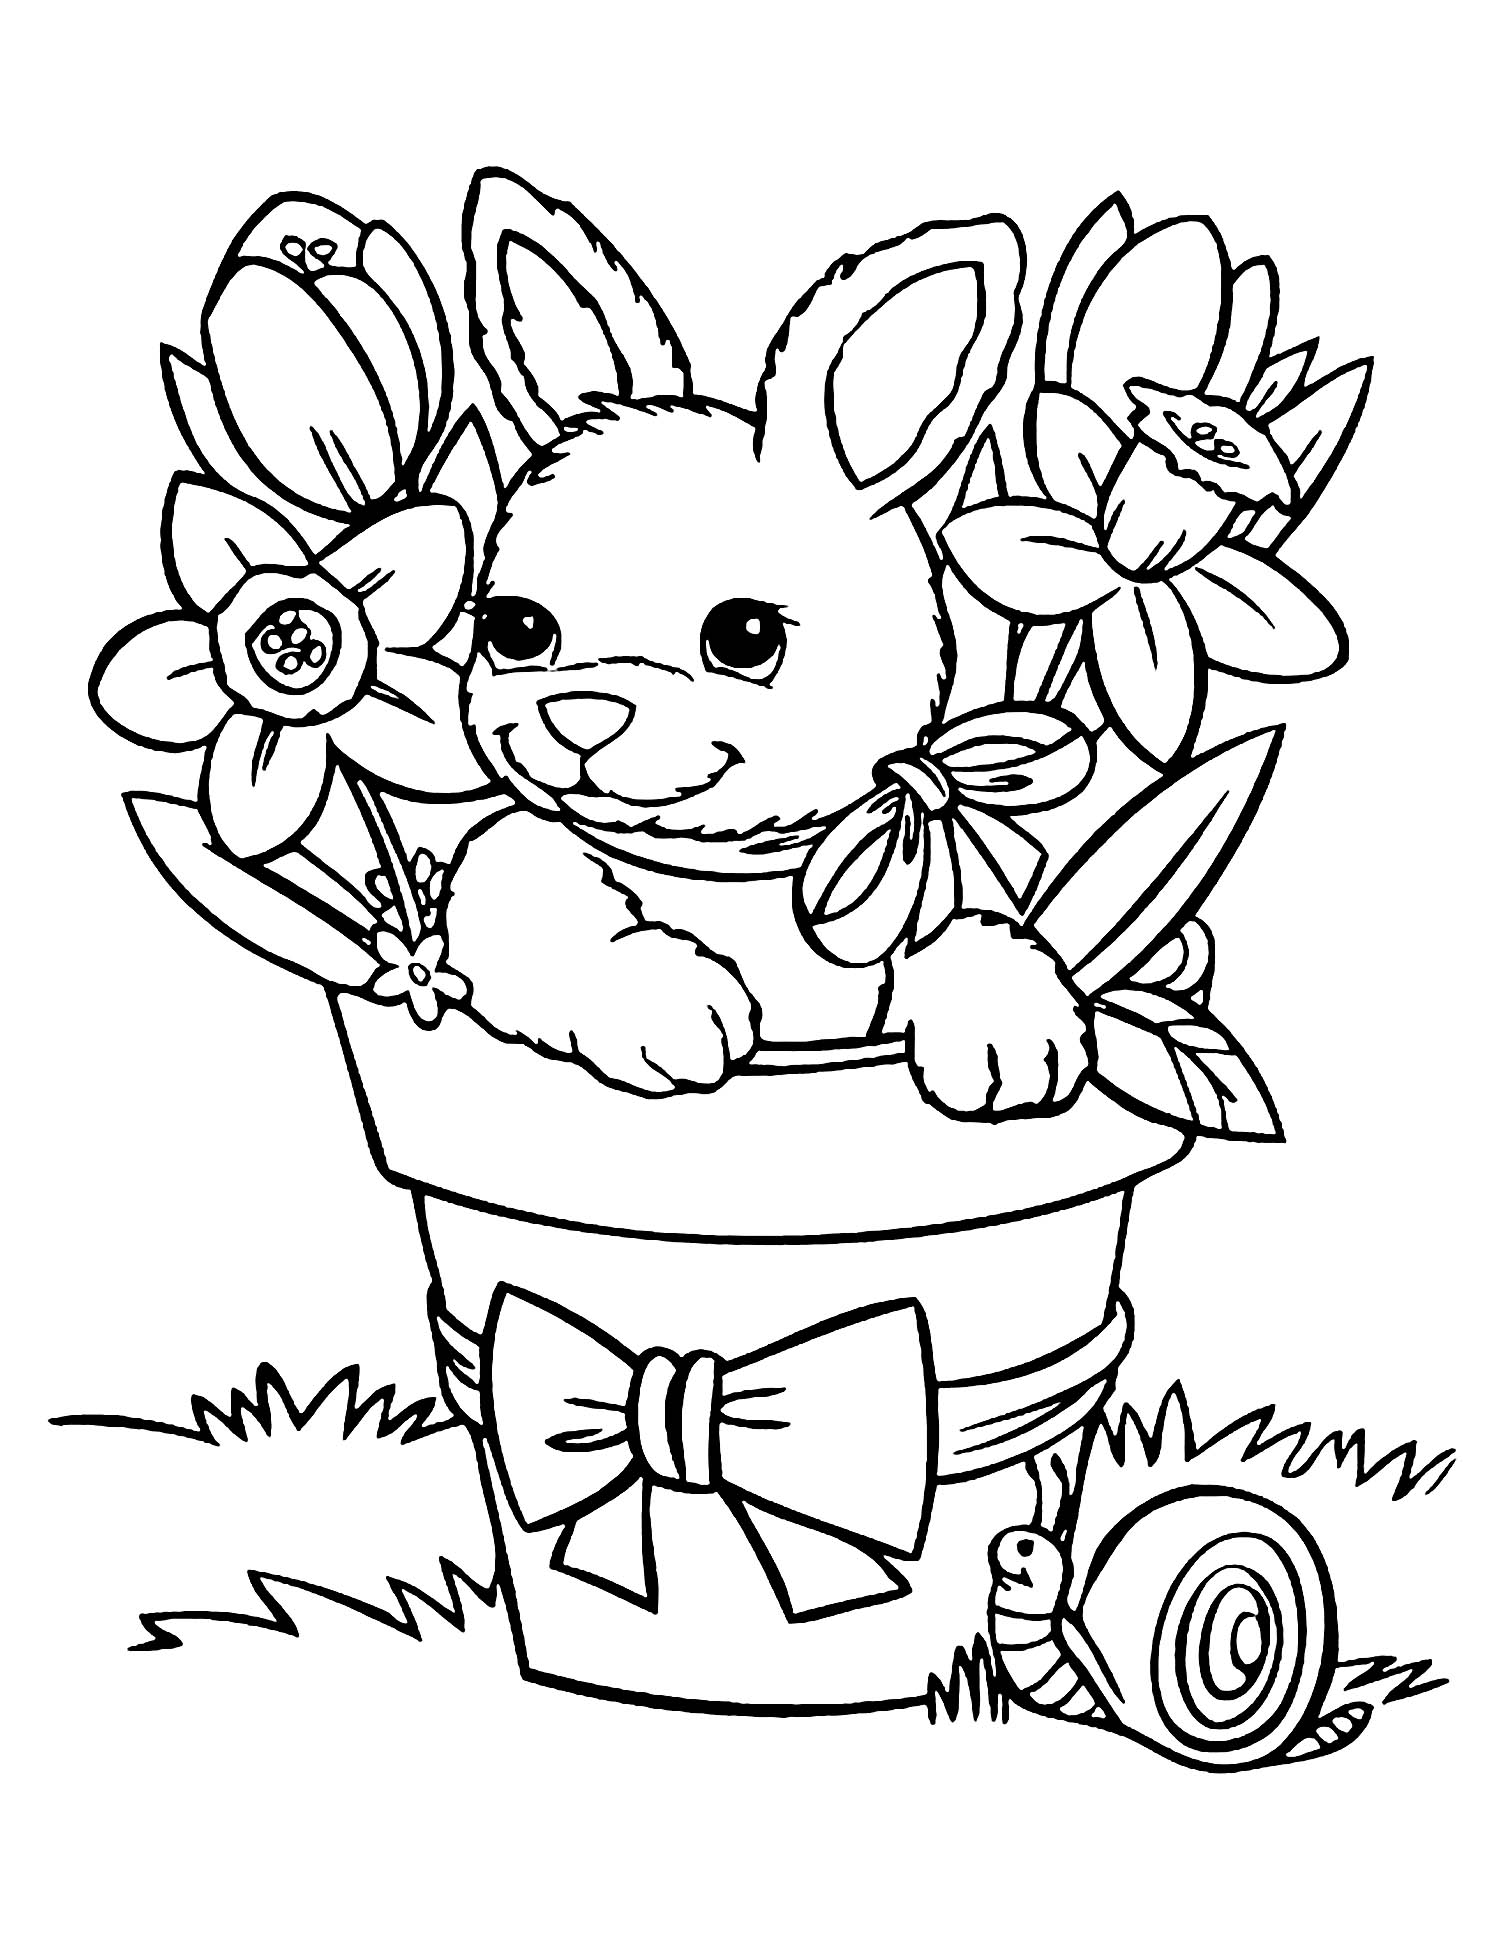 bunny coloring book rabbit to print for free rabbit kids coloring pages bunny coloring book